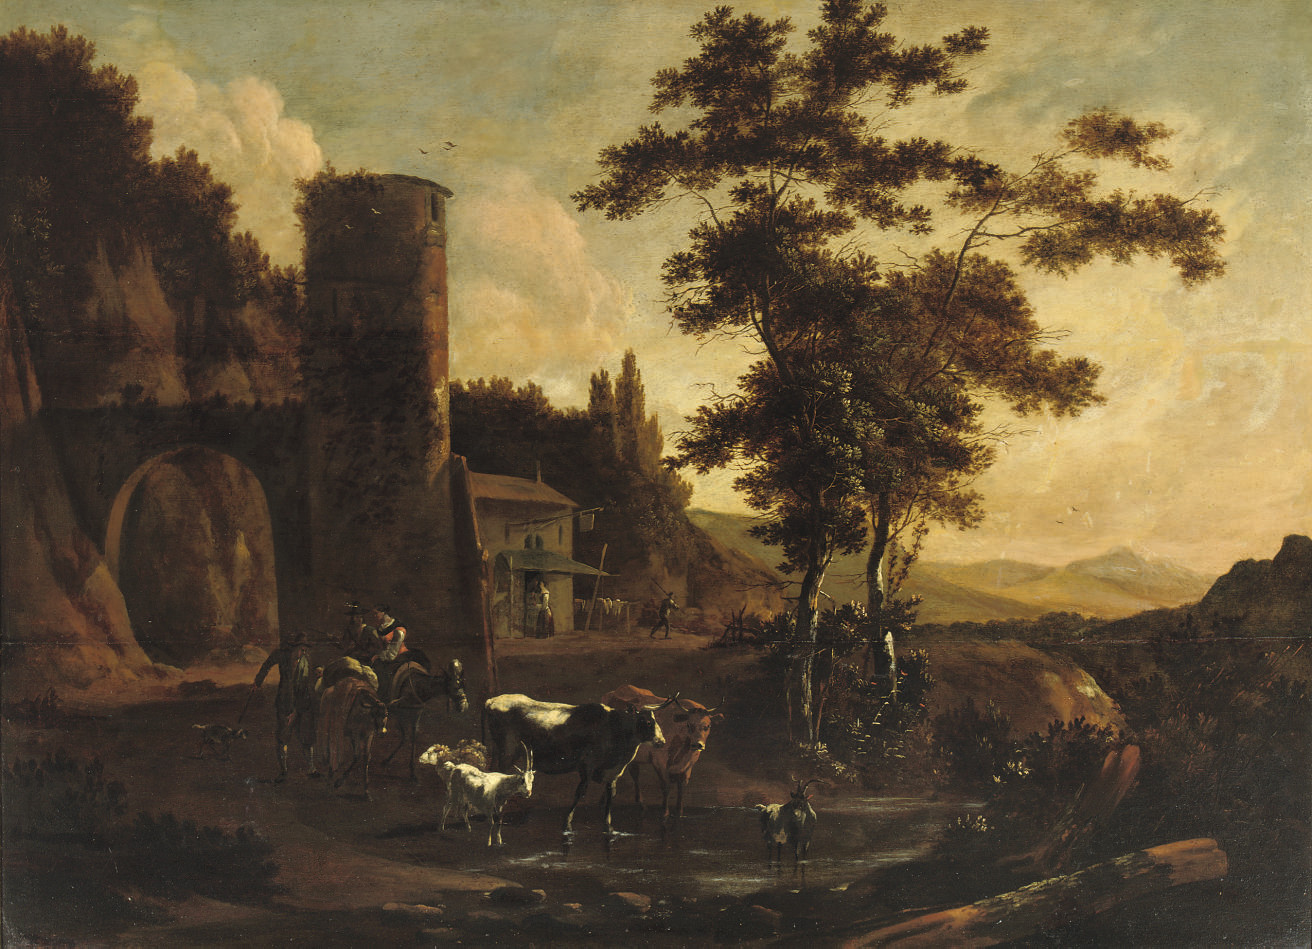 Attributed to Willem Hendriksz